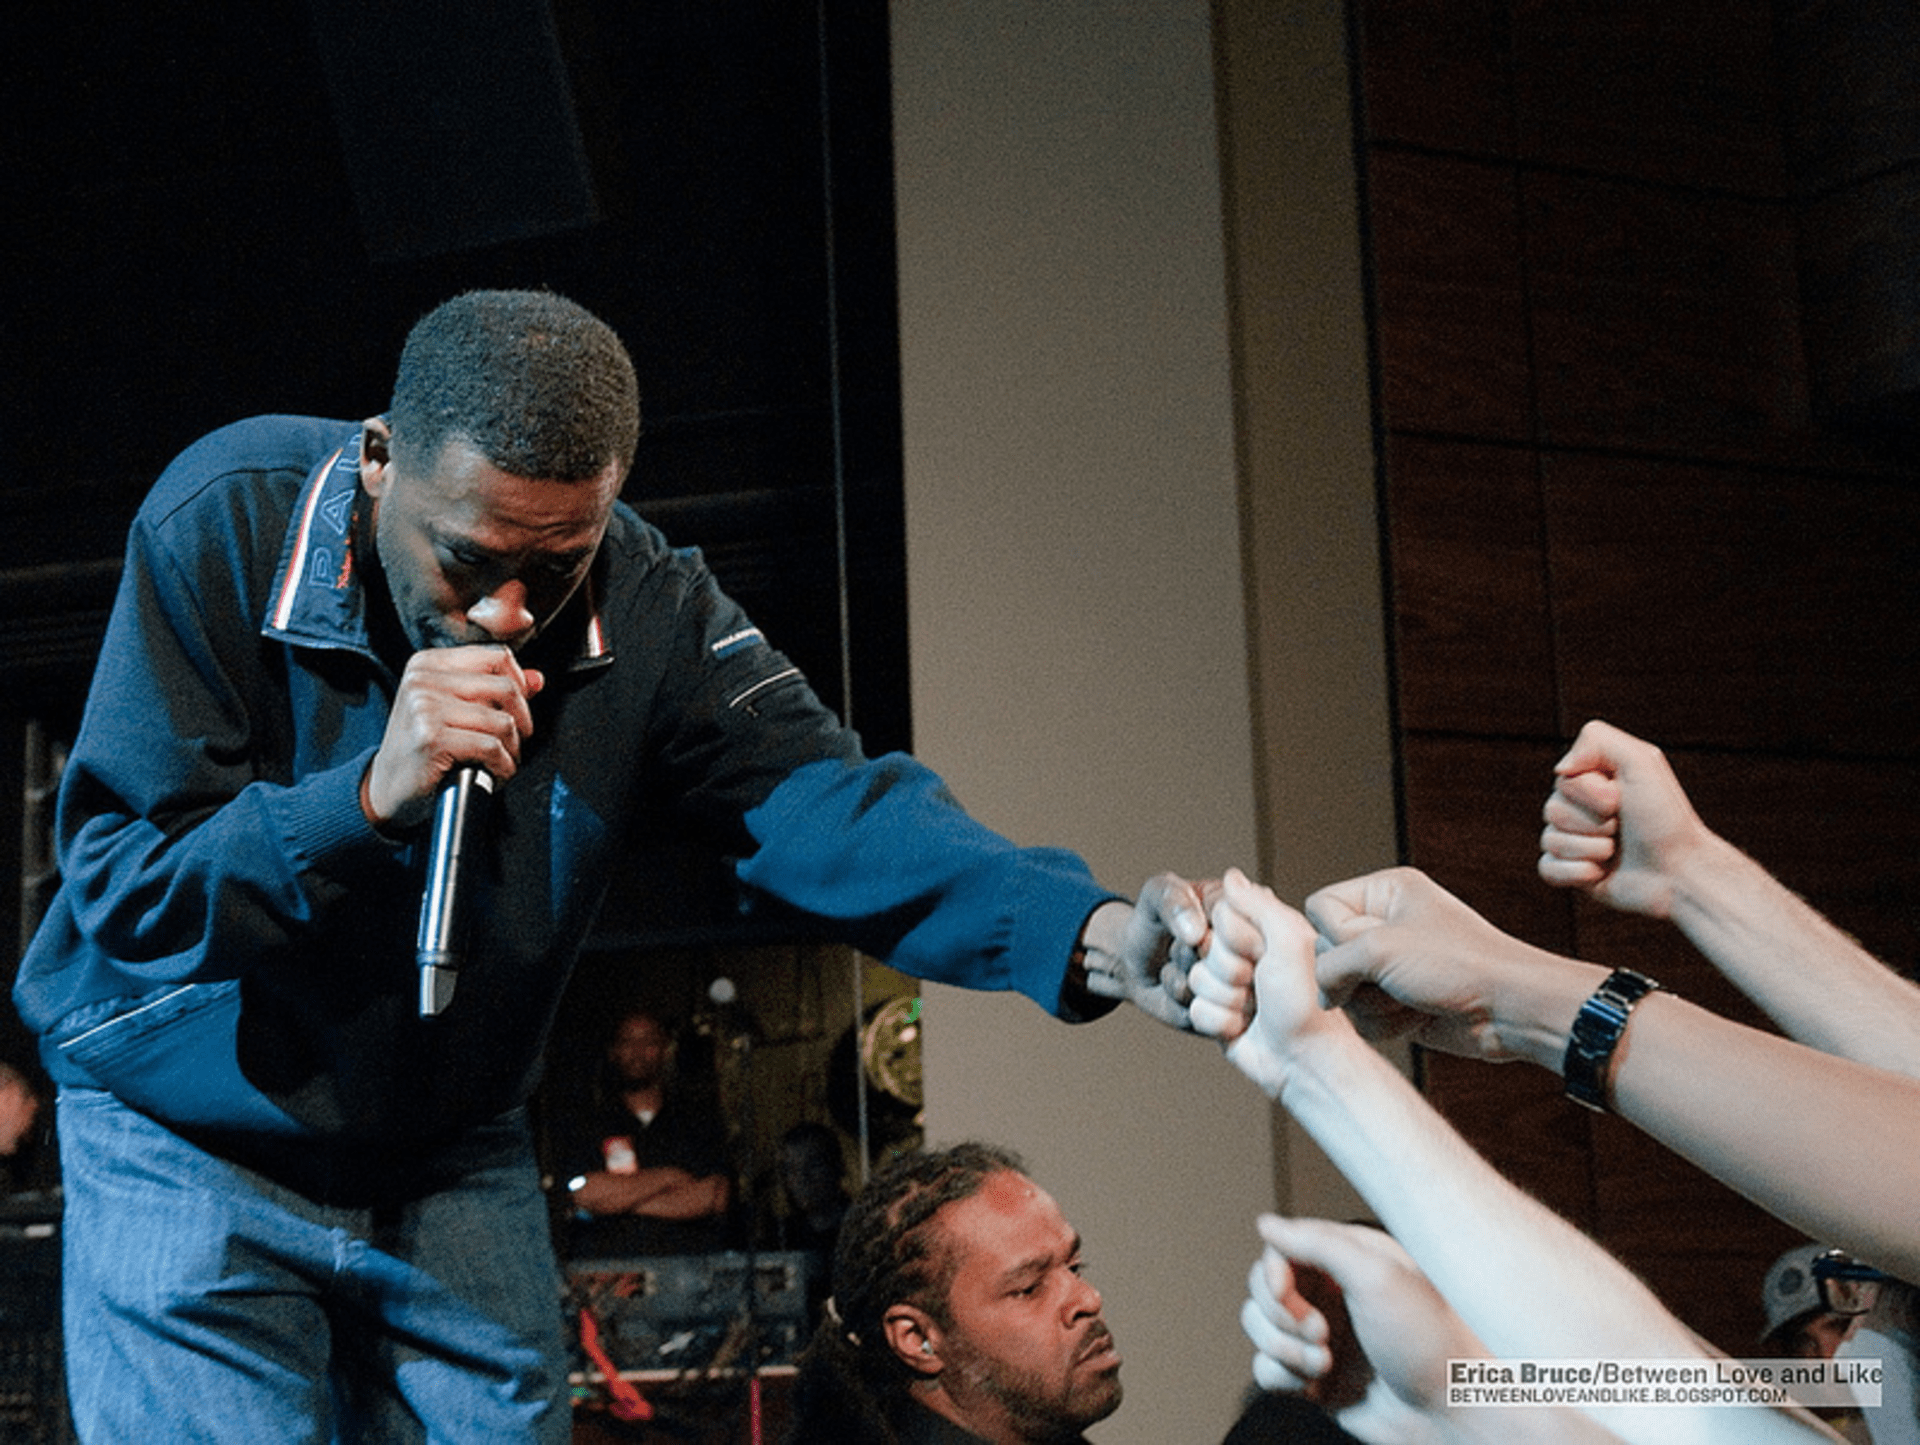 GZA, of Wu-Tang Clan